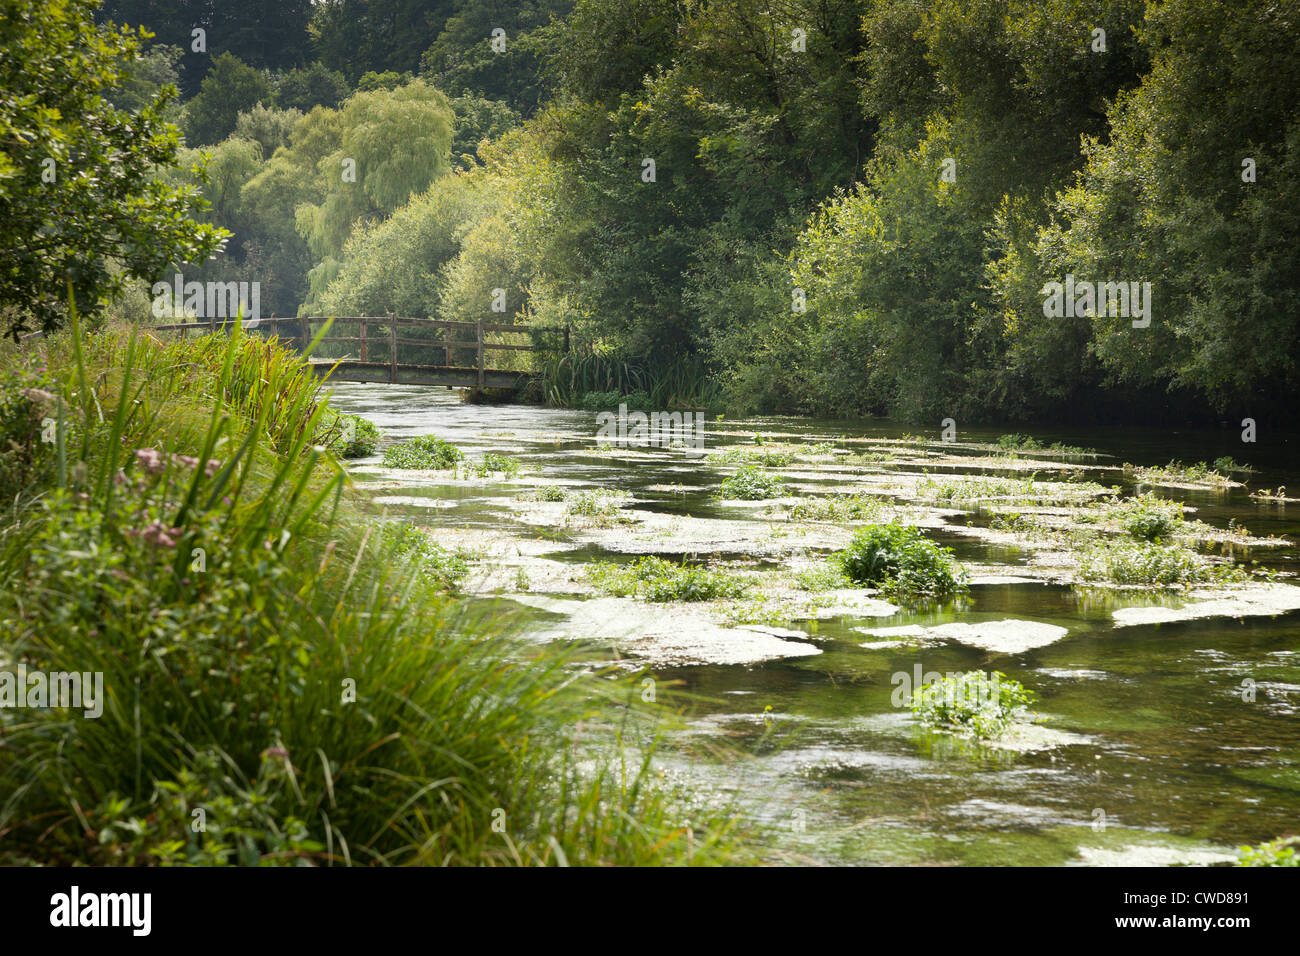 river weed and wooden footbridge over tree lined River Itchen - Stock Image